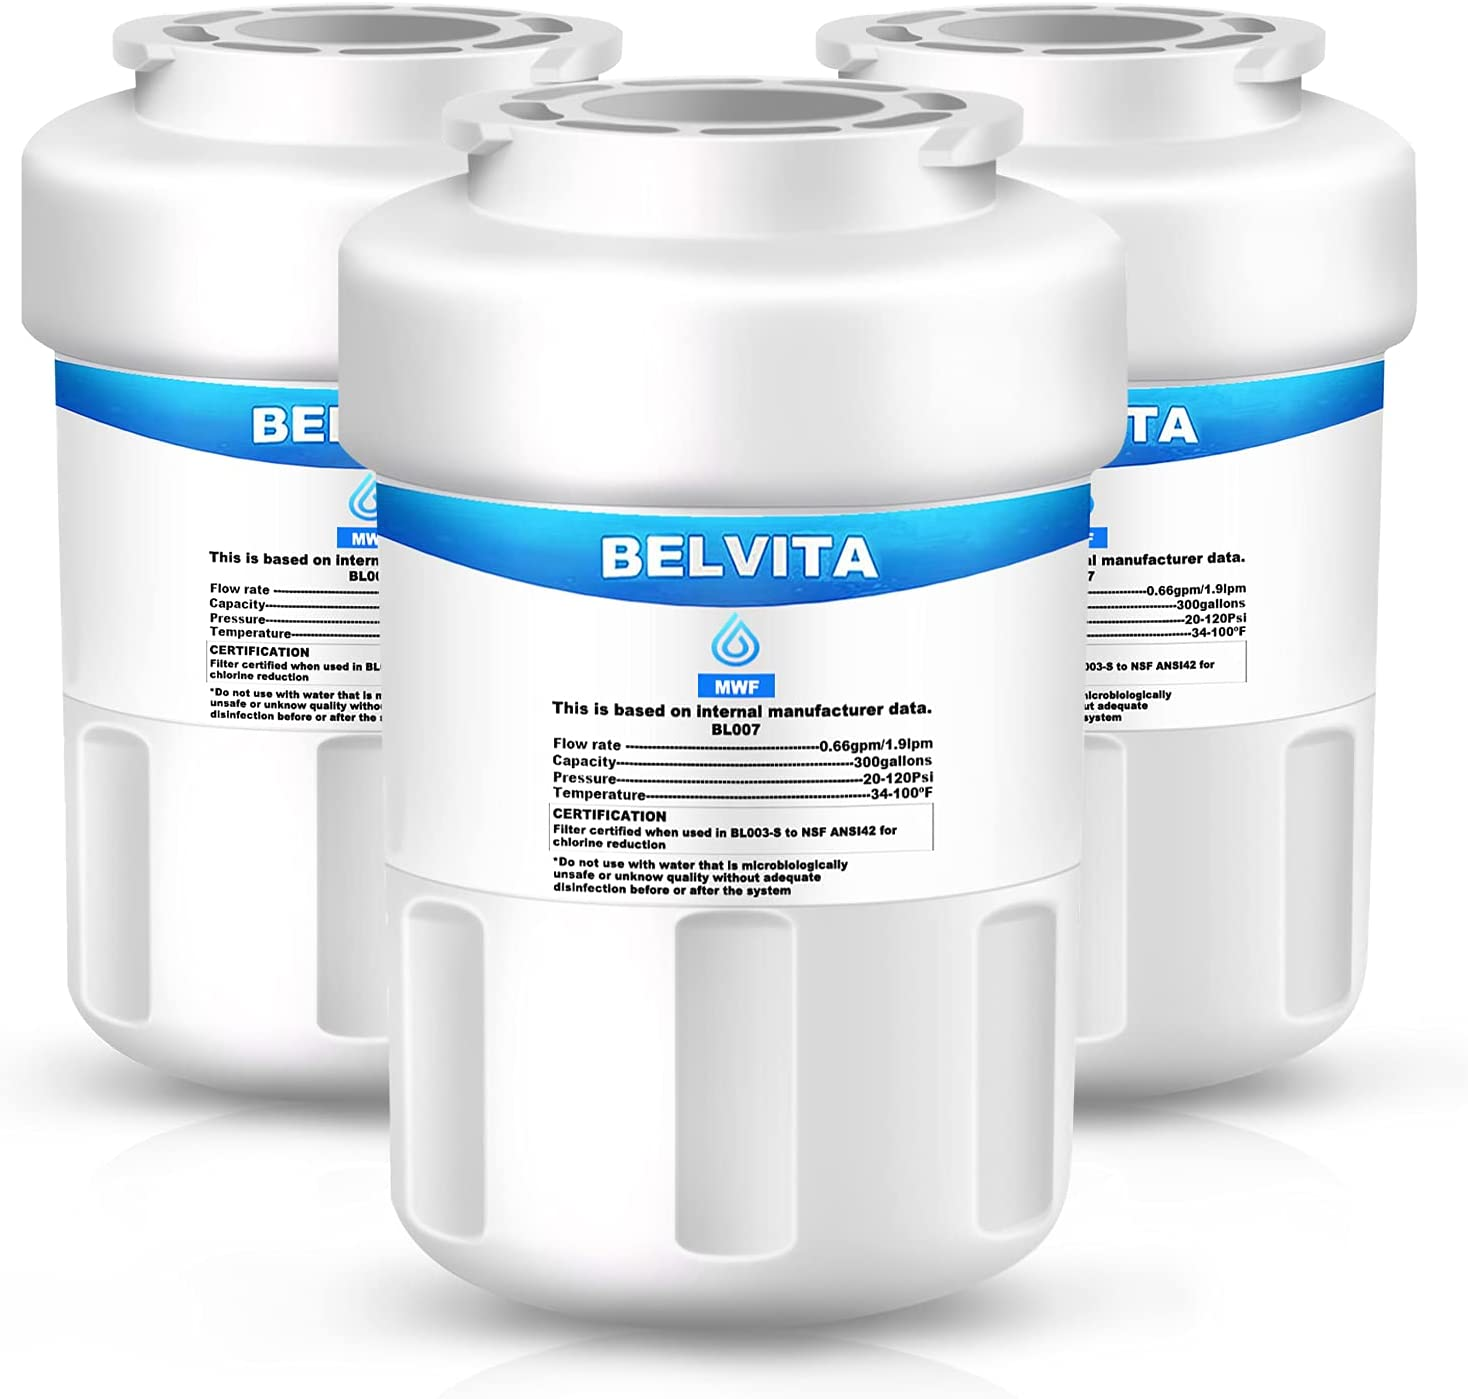 BELVITA MWF Refrigerator Water Filter MW New product!! with GE Compatible Very popular